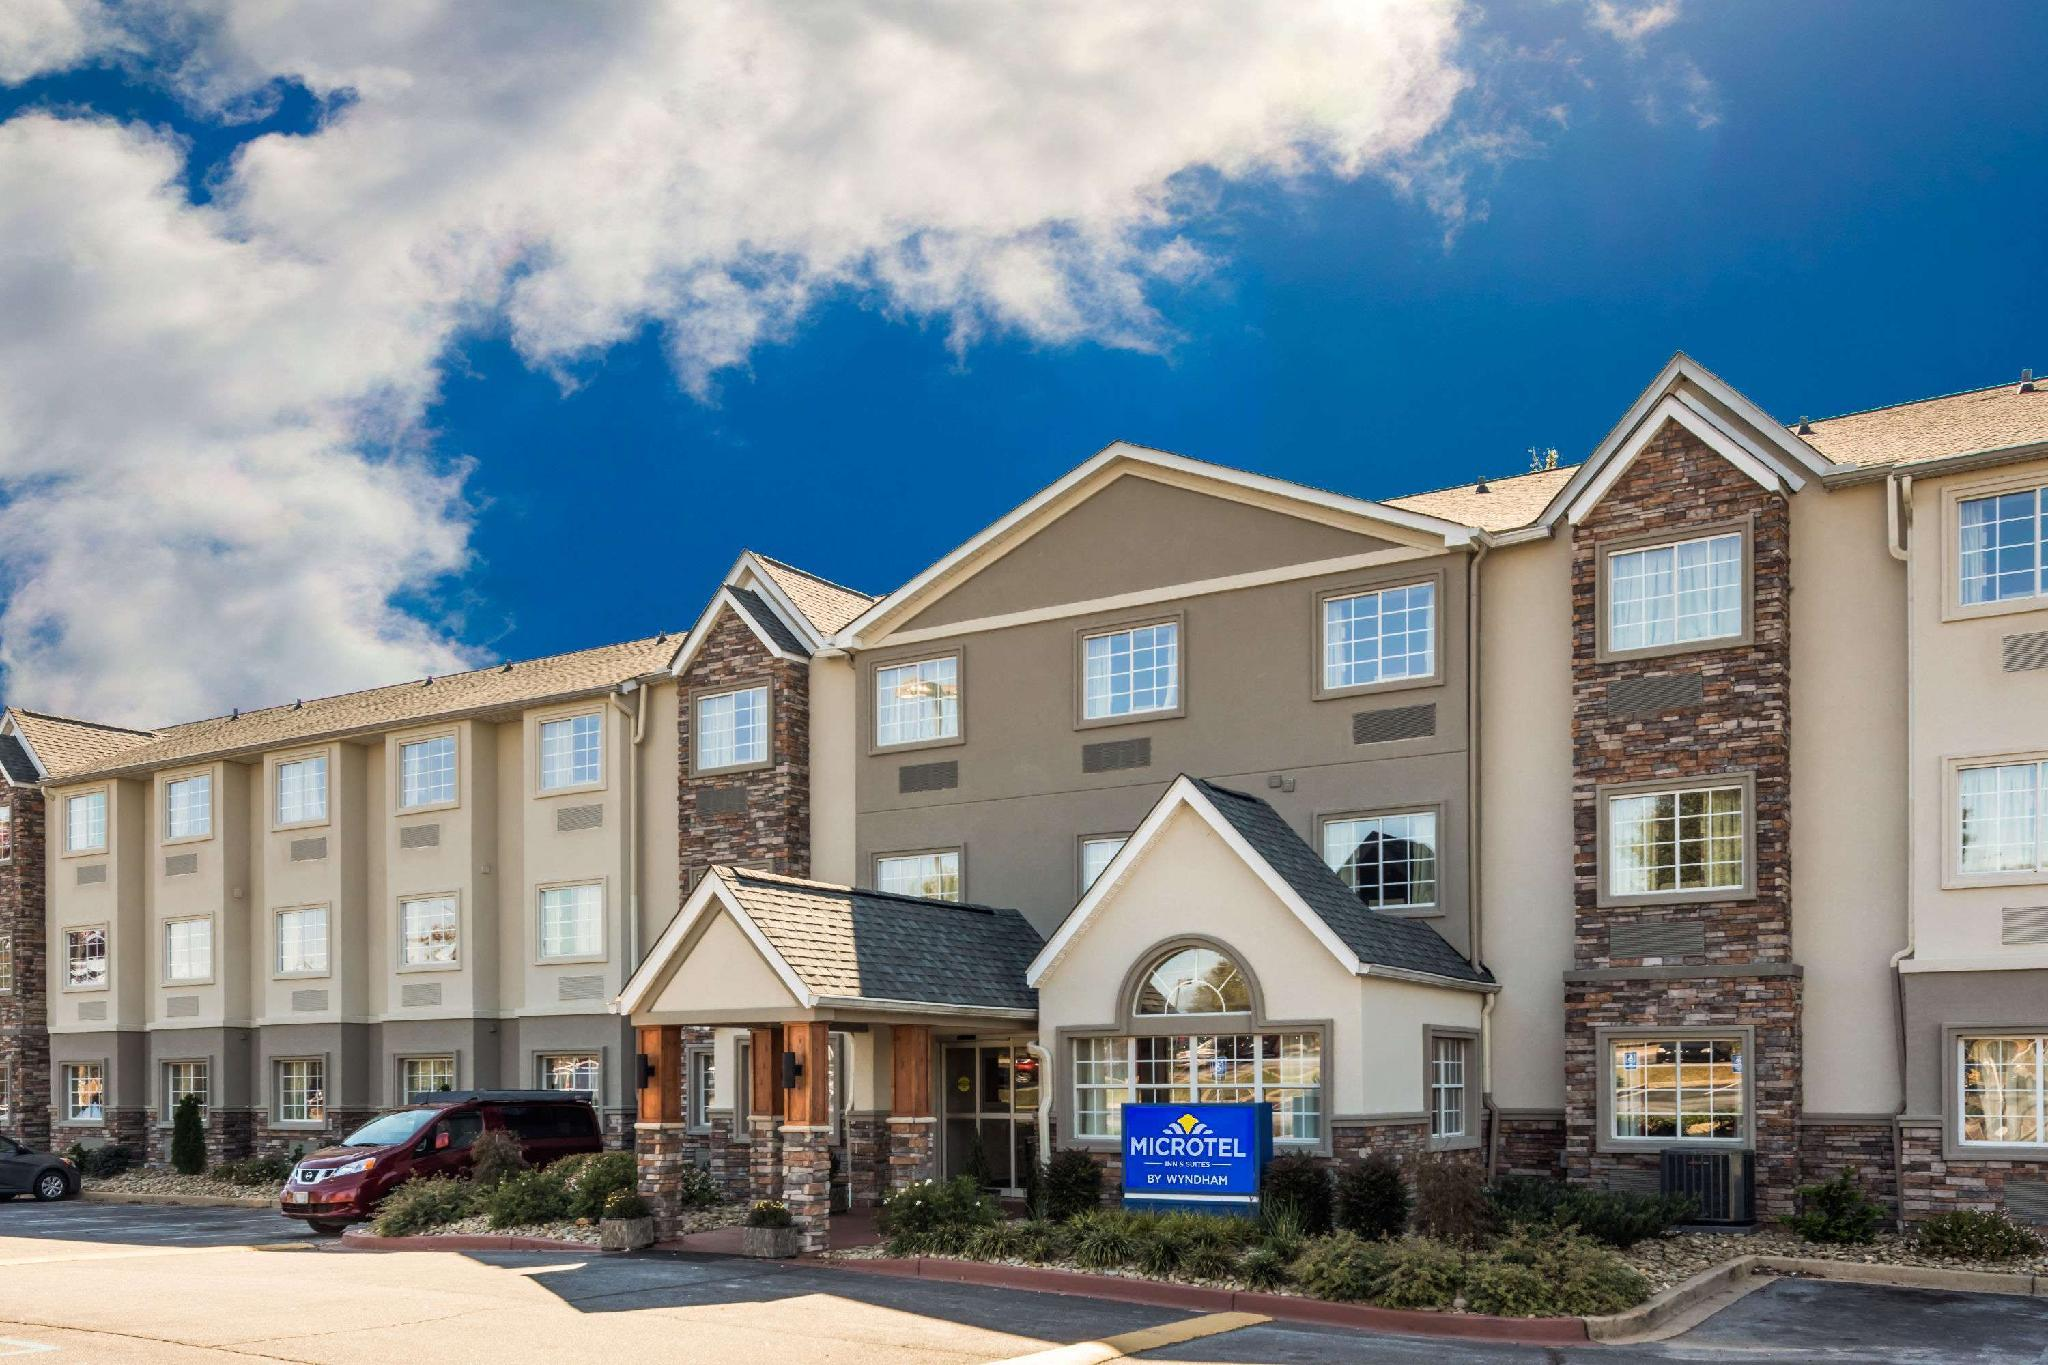 Microtel Inn And Suites Greenville By Wyndham